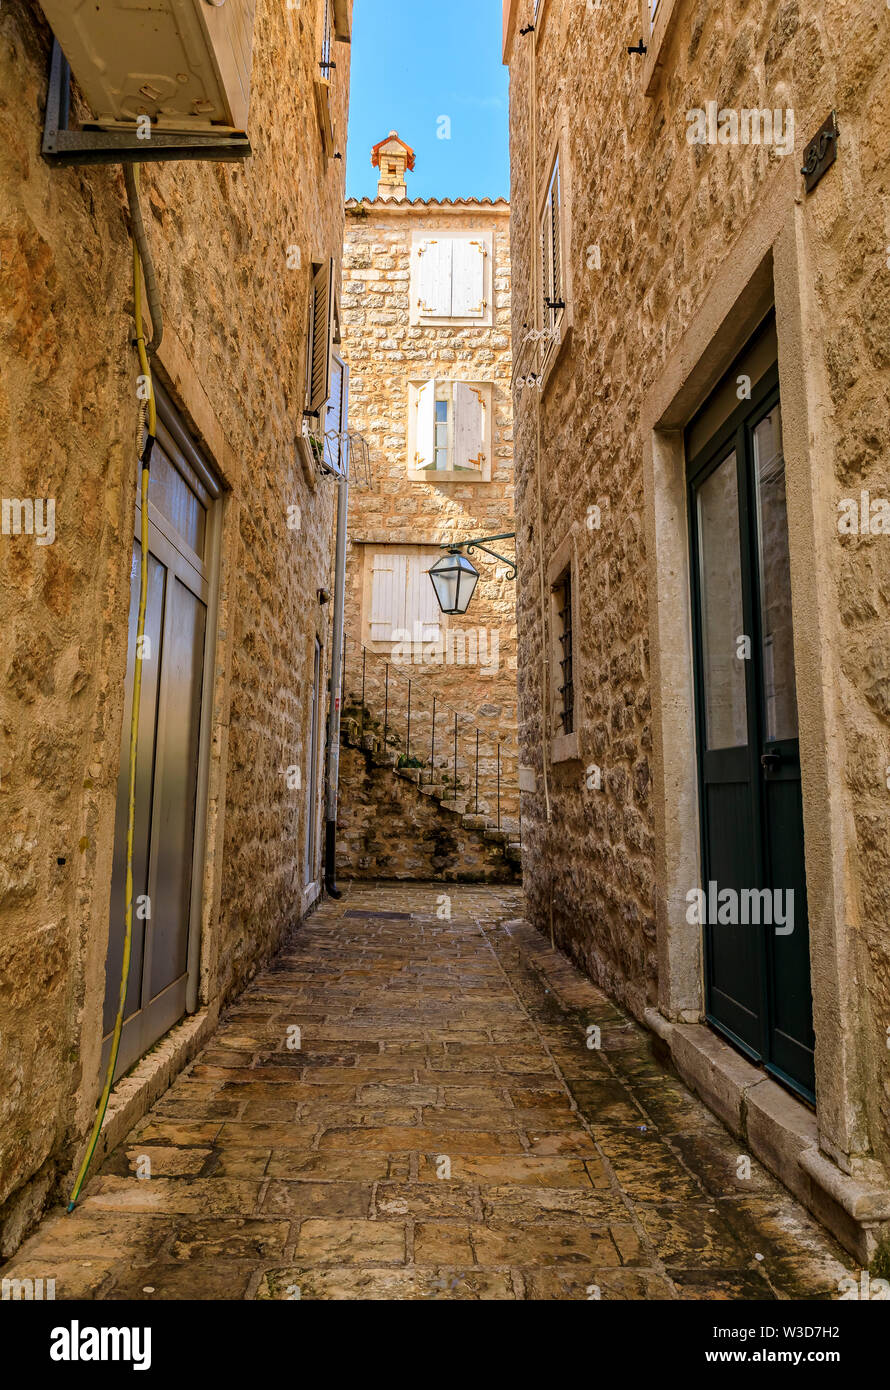 Picturesque narrow streets of the well preserved medieval Old town with shops, cafes and restaurants in Budva, Montenegro in the Balkans - Stock Image